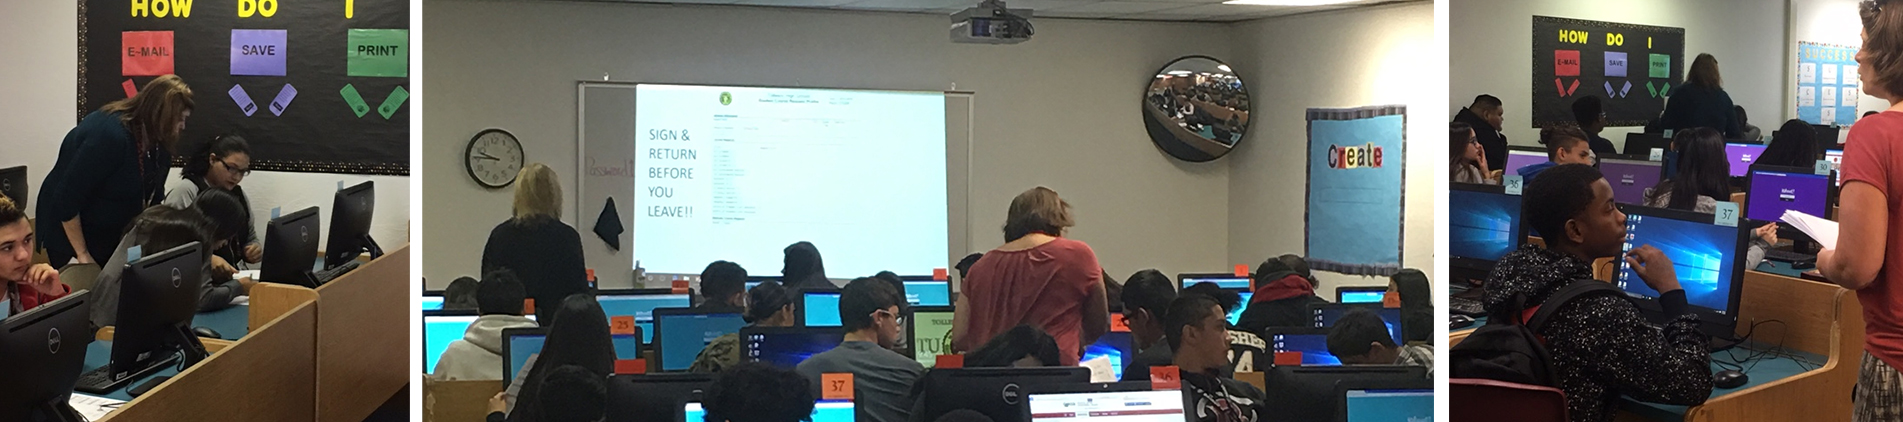 Students and teachers in computer class.